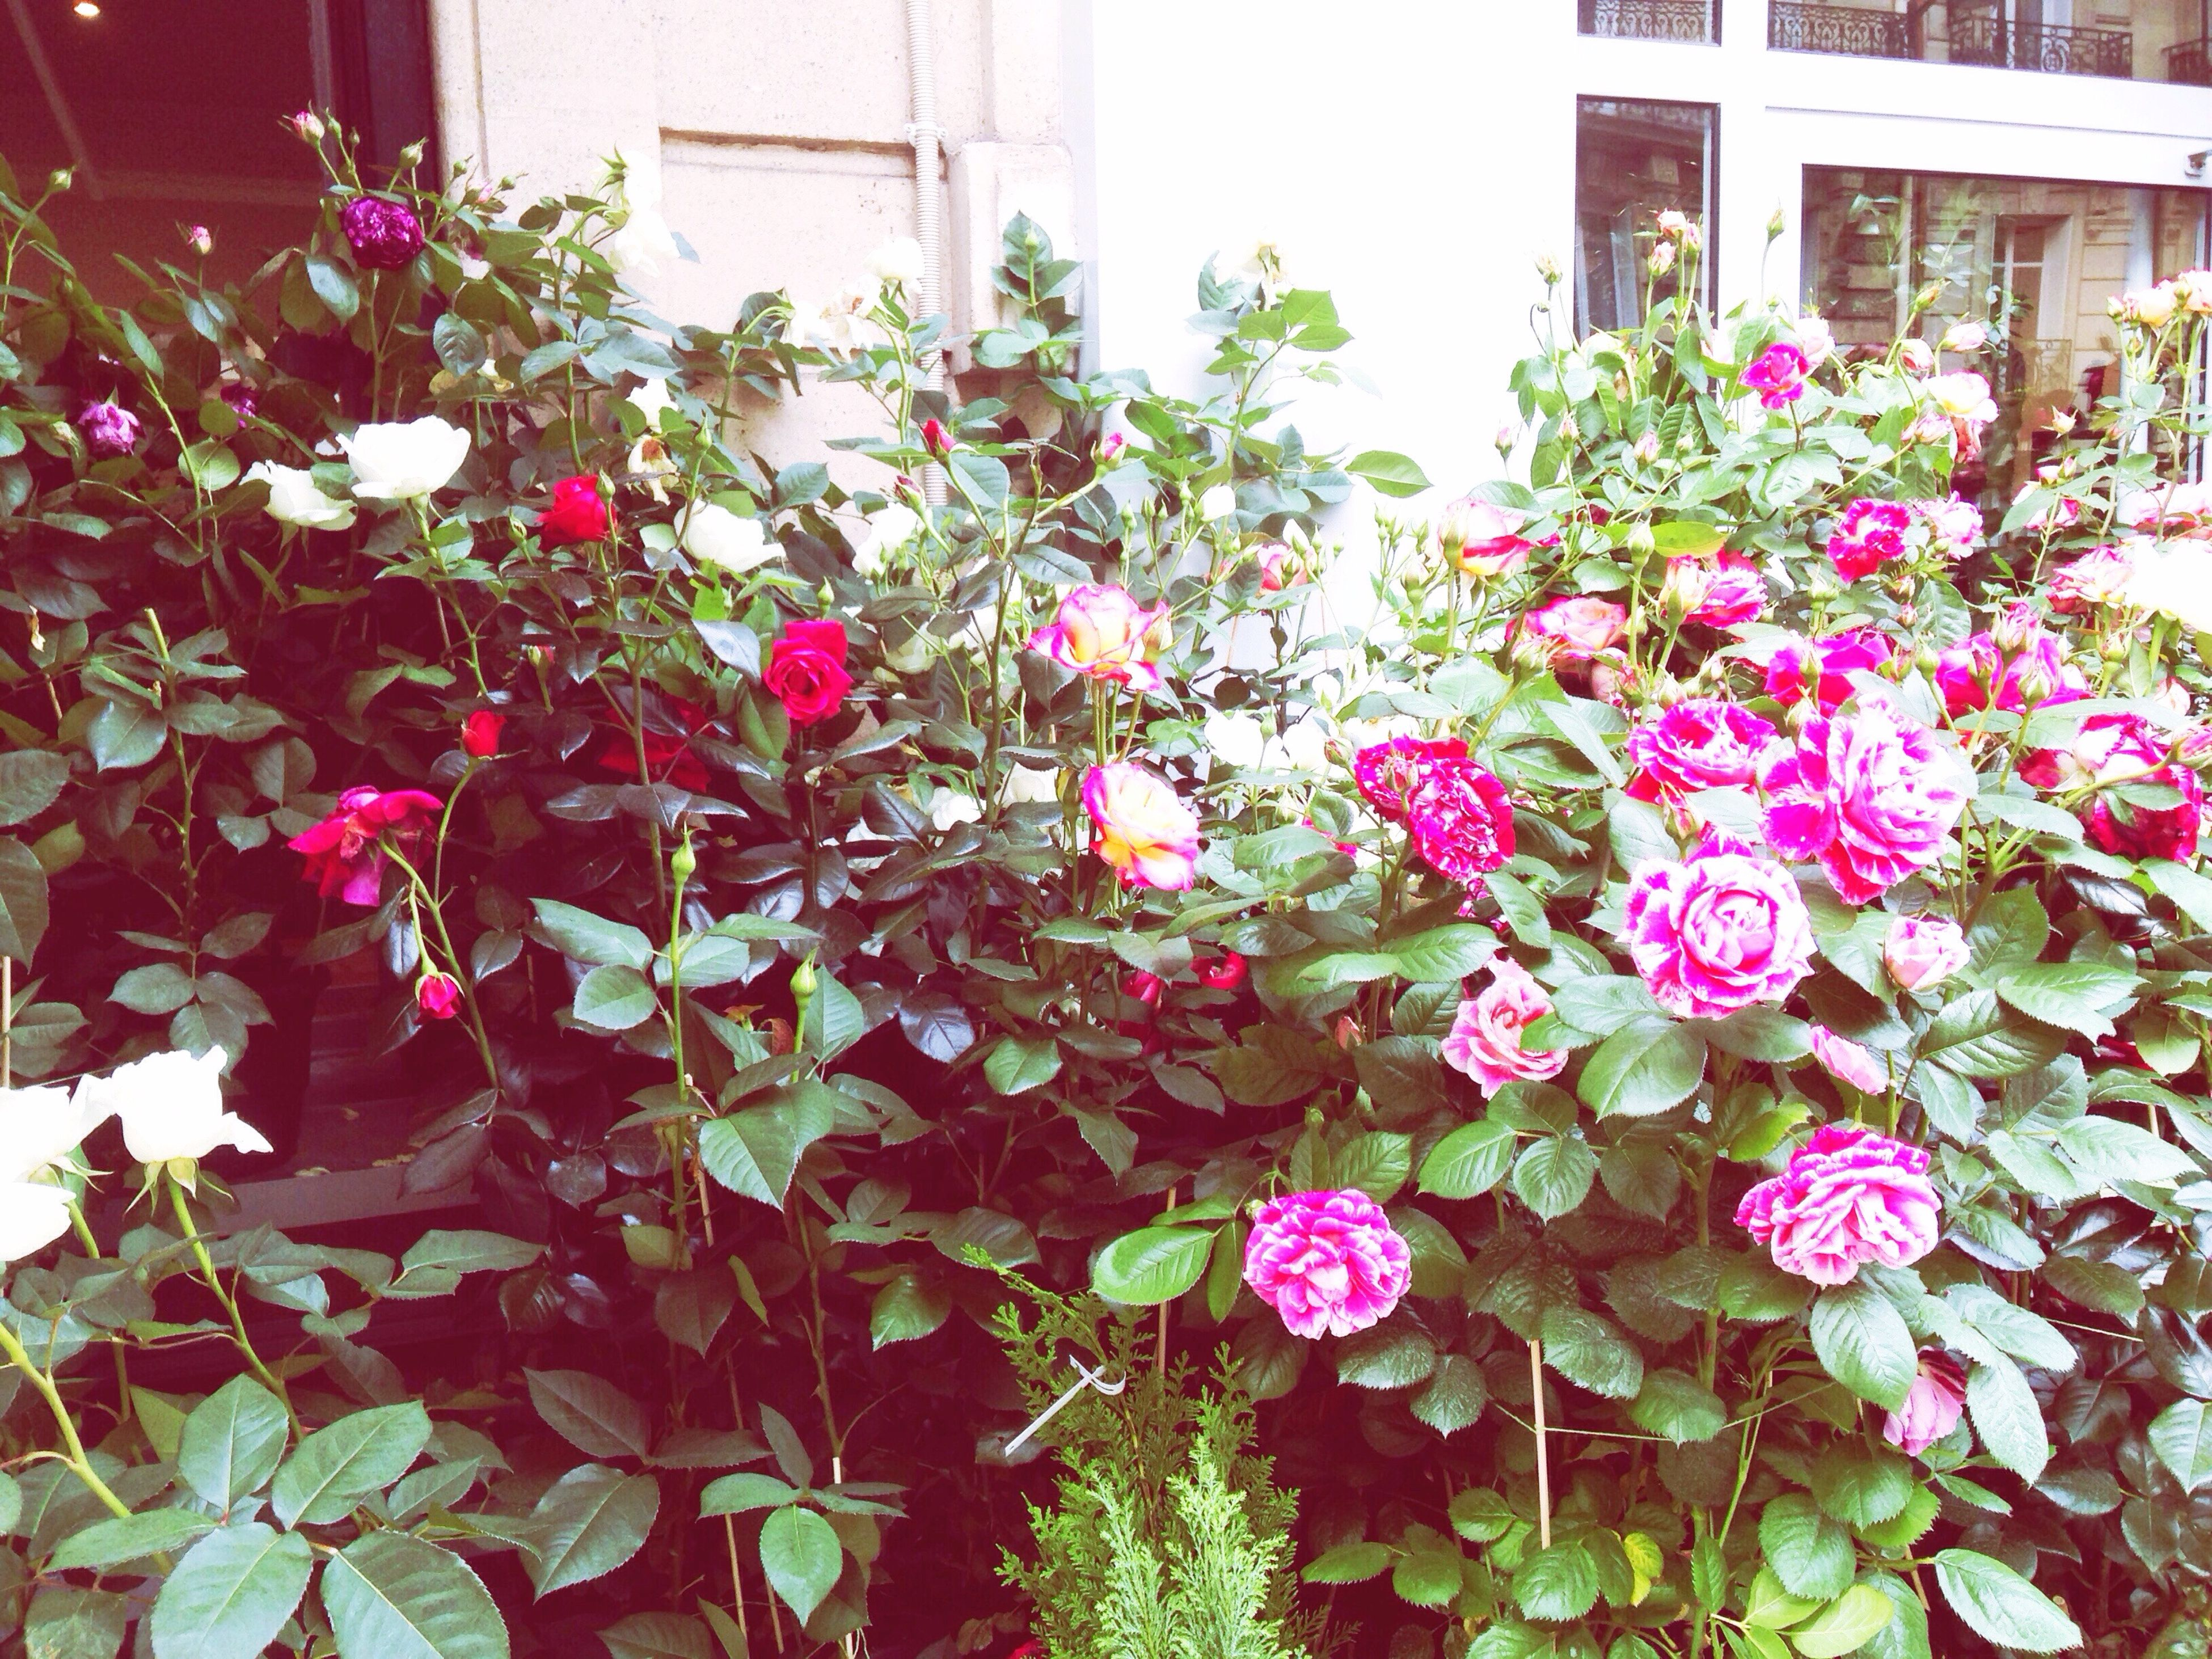 flower, freshness, fragility, growth, petal, plant, beauty in nature, blooming, nature, leaf, pink color, flower head, in bloom, blossom, building exterior, potted plant, springtime, built structure, day, botany